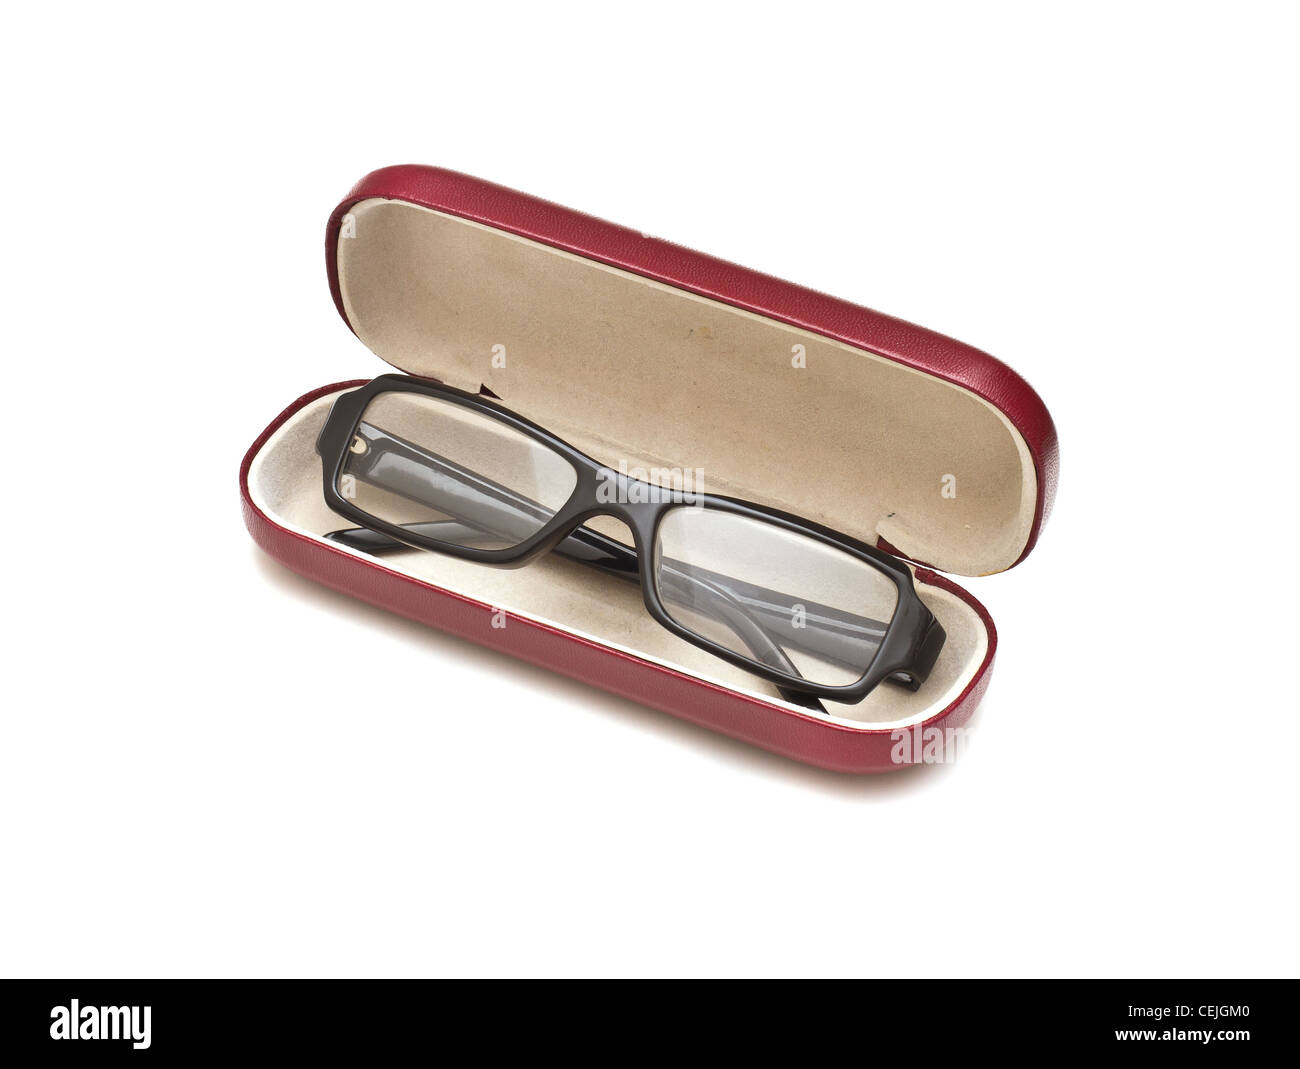 5e4020cdb31 Glasses Case Stock Photos   Glasses Case Stock Images - Alamy